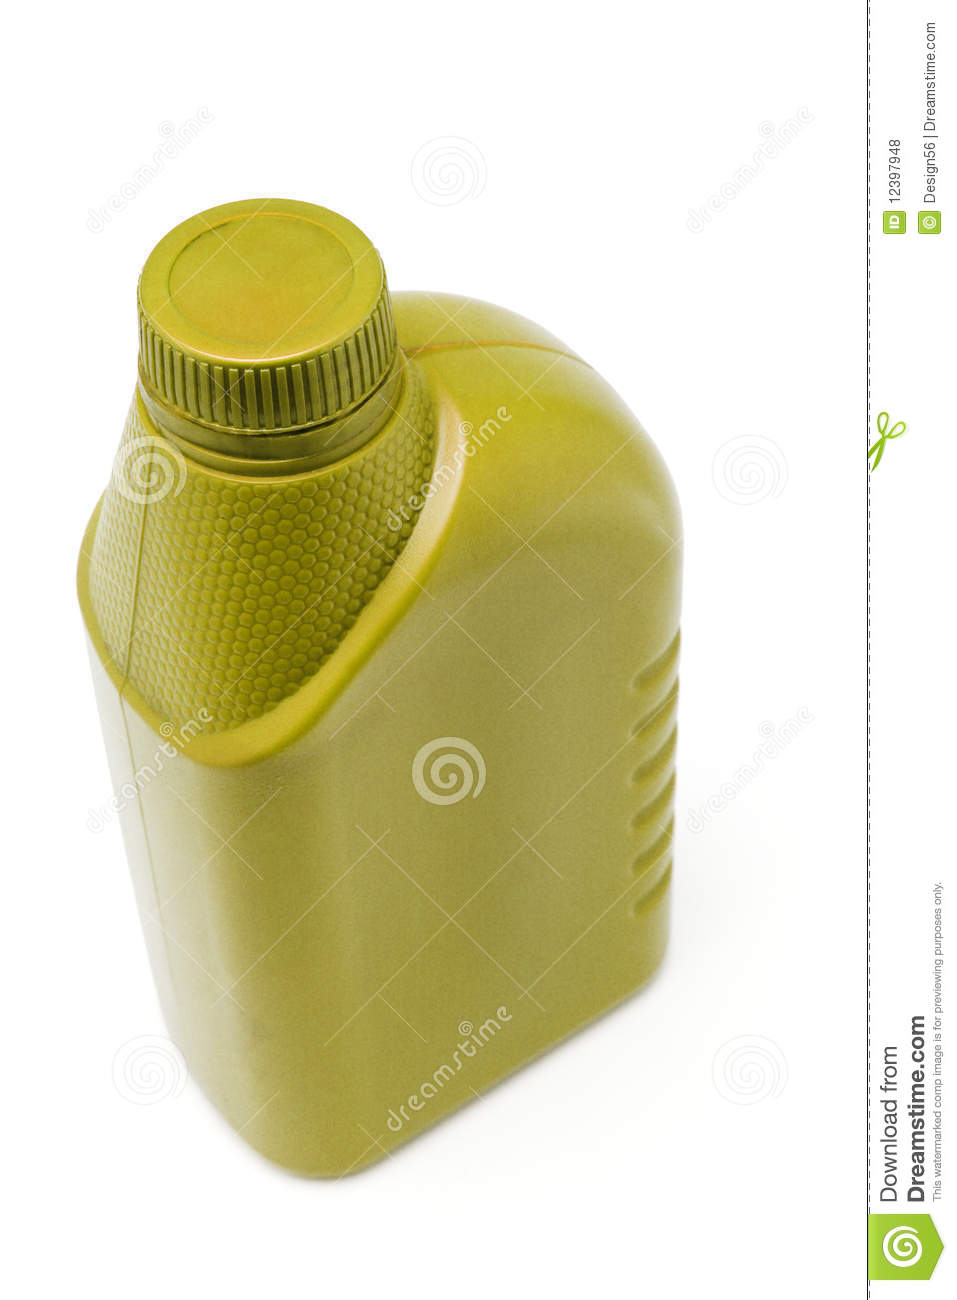 Motor Oil Container Royalty Free Stock Photos Image